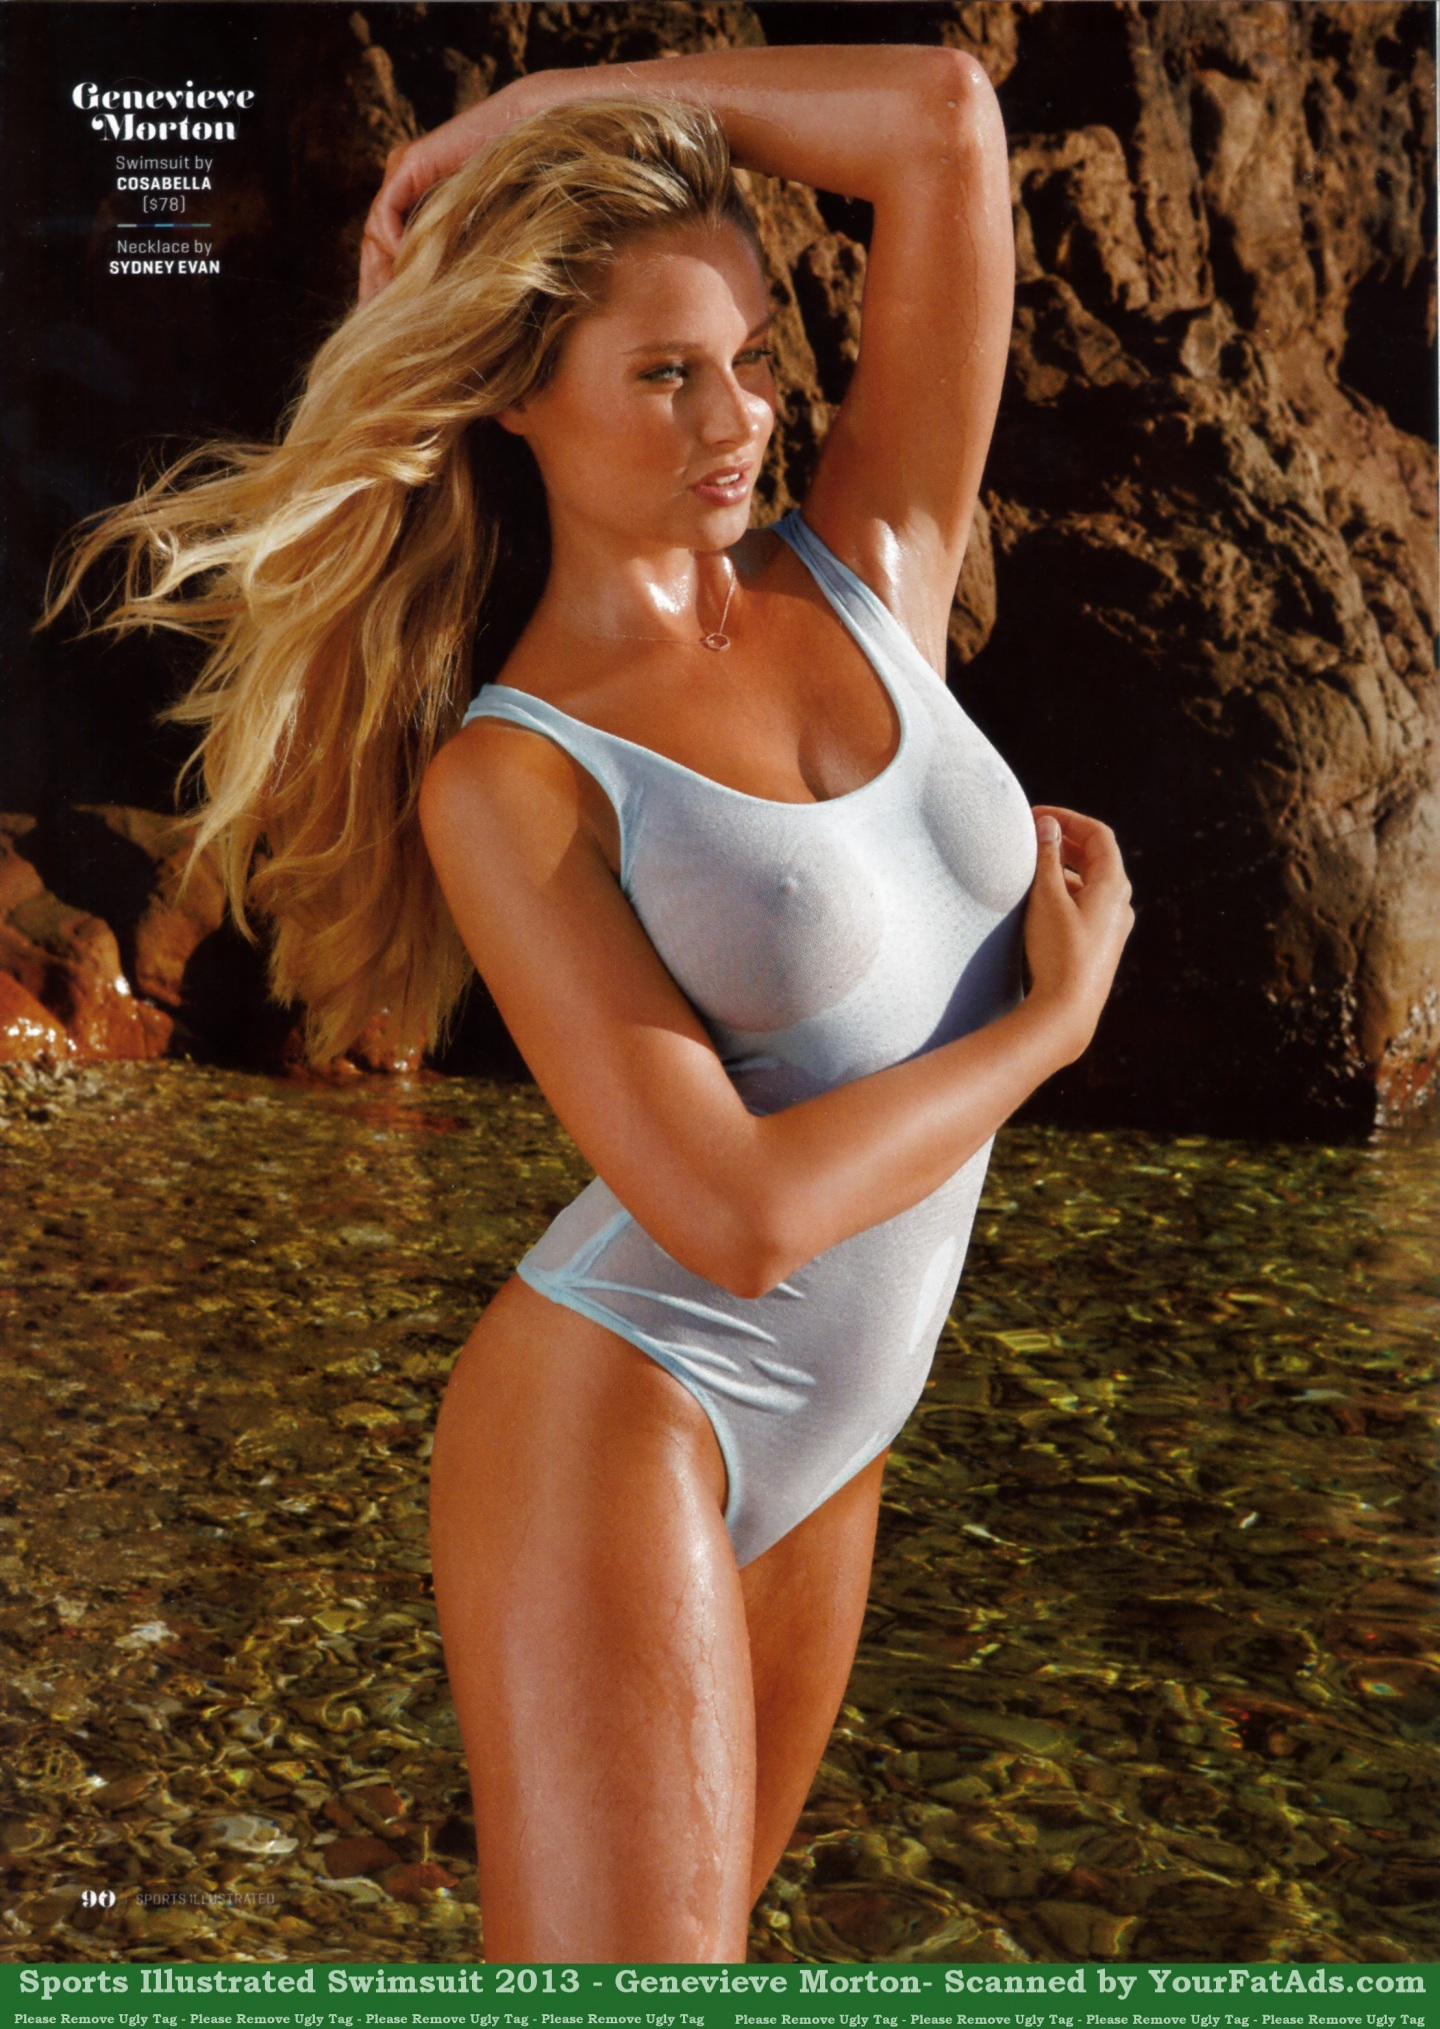 Sports Illustrated Swimsuit Genevieve Morton Sports Illustrated